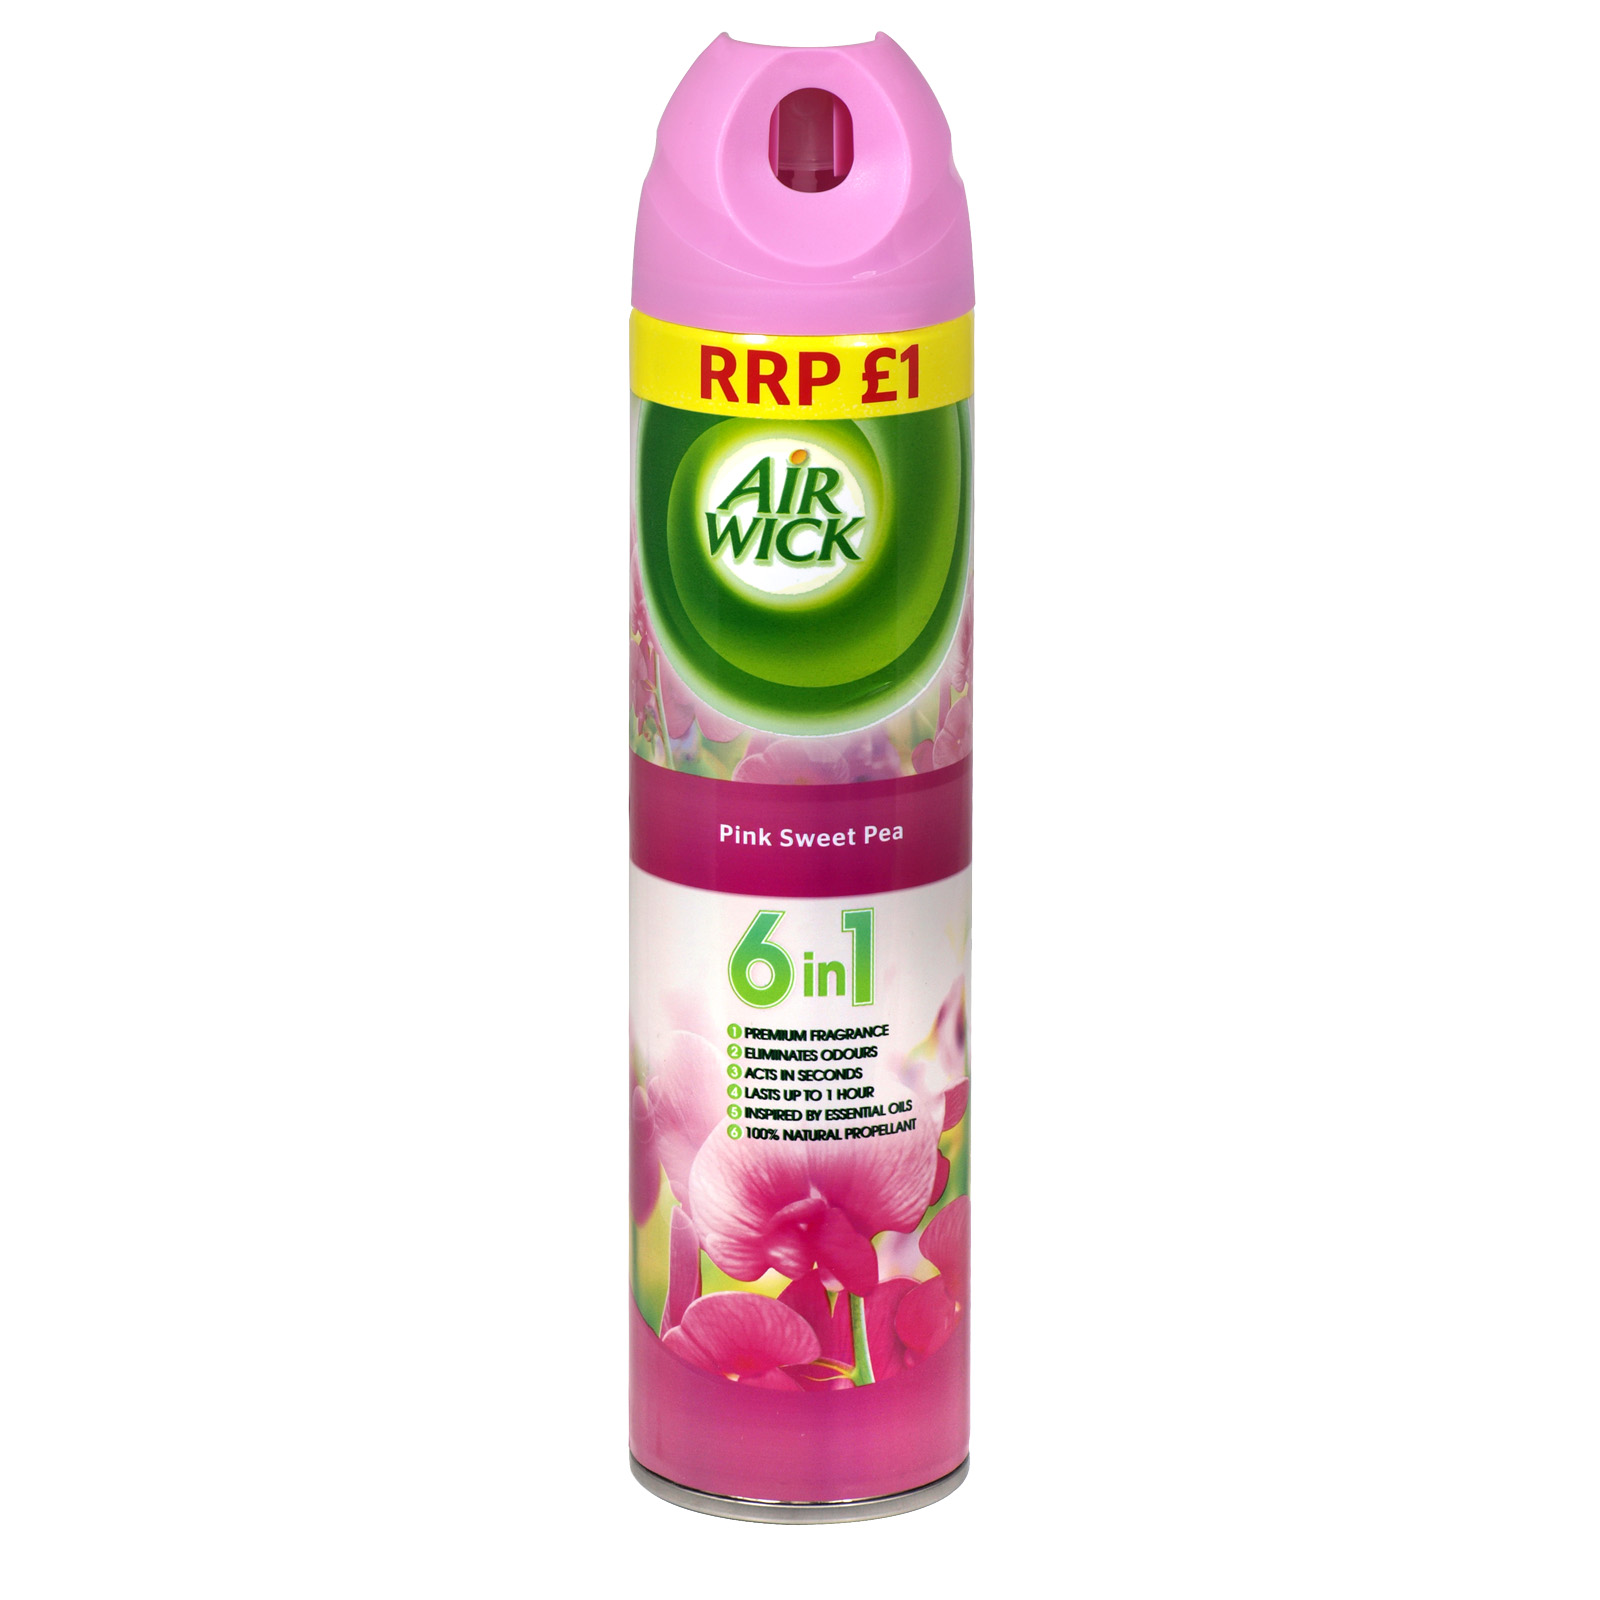 AIRWICK 6IN1 AIR FRESHENER 240ML PM?1 PINK SWEET PEA X12